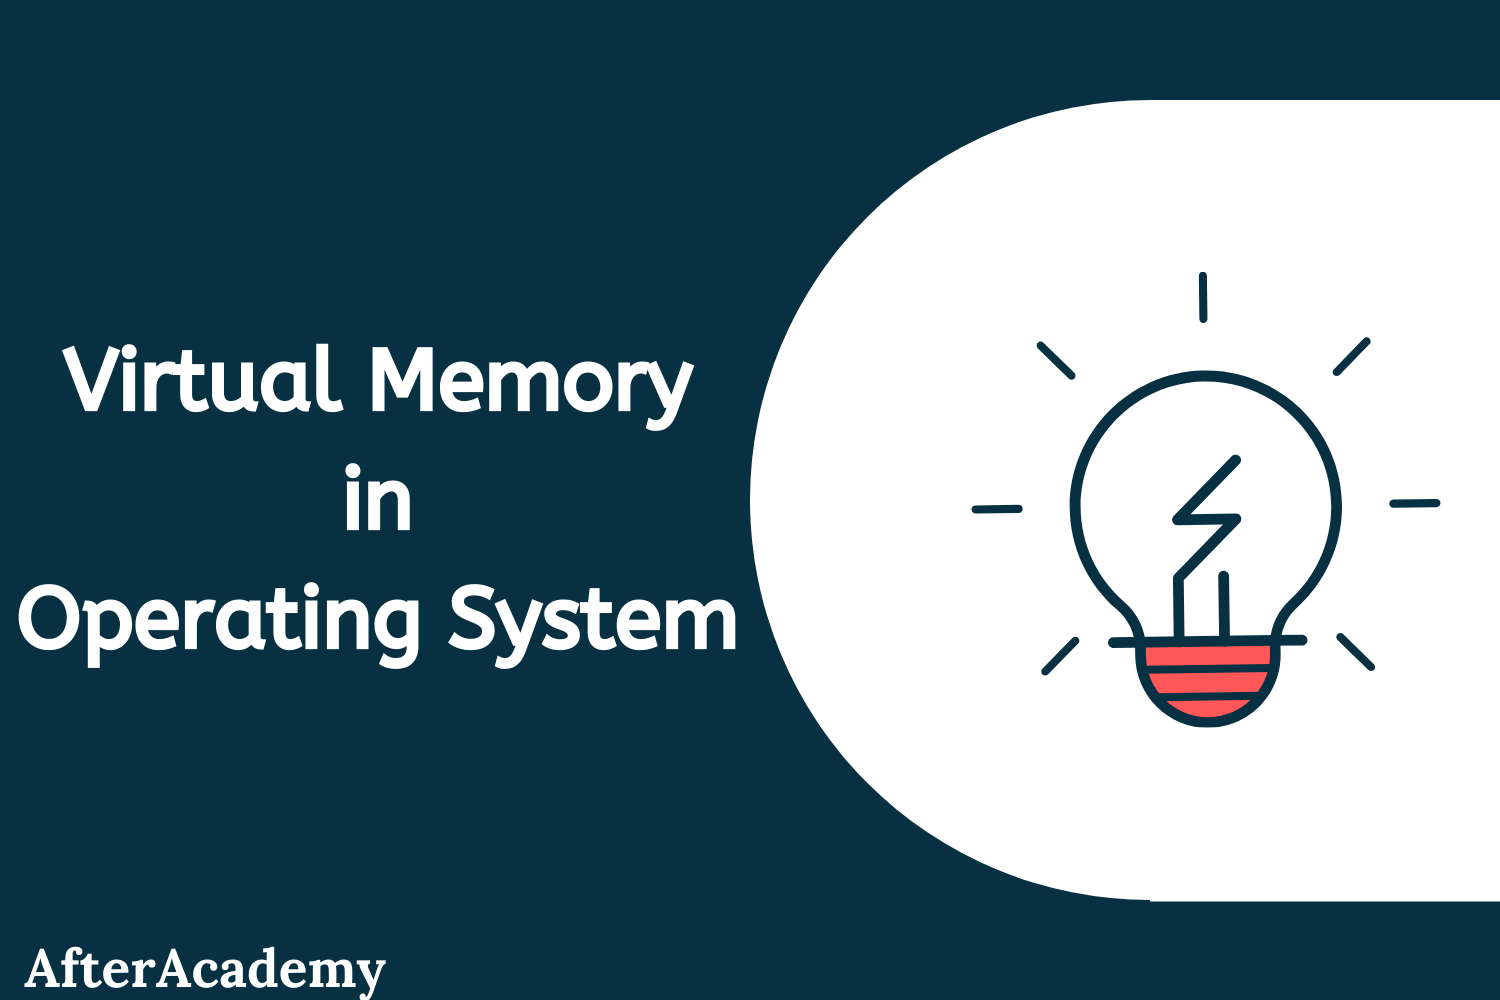 What is Virtual Memory and how is it implemented?